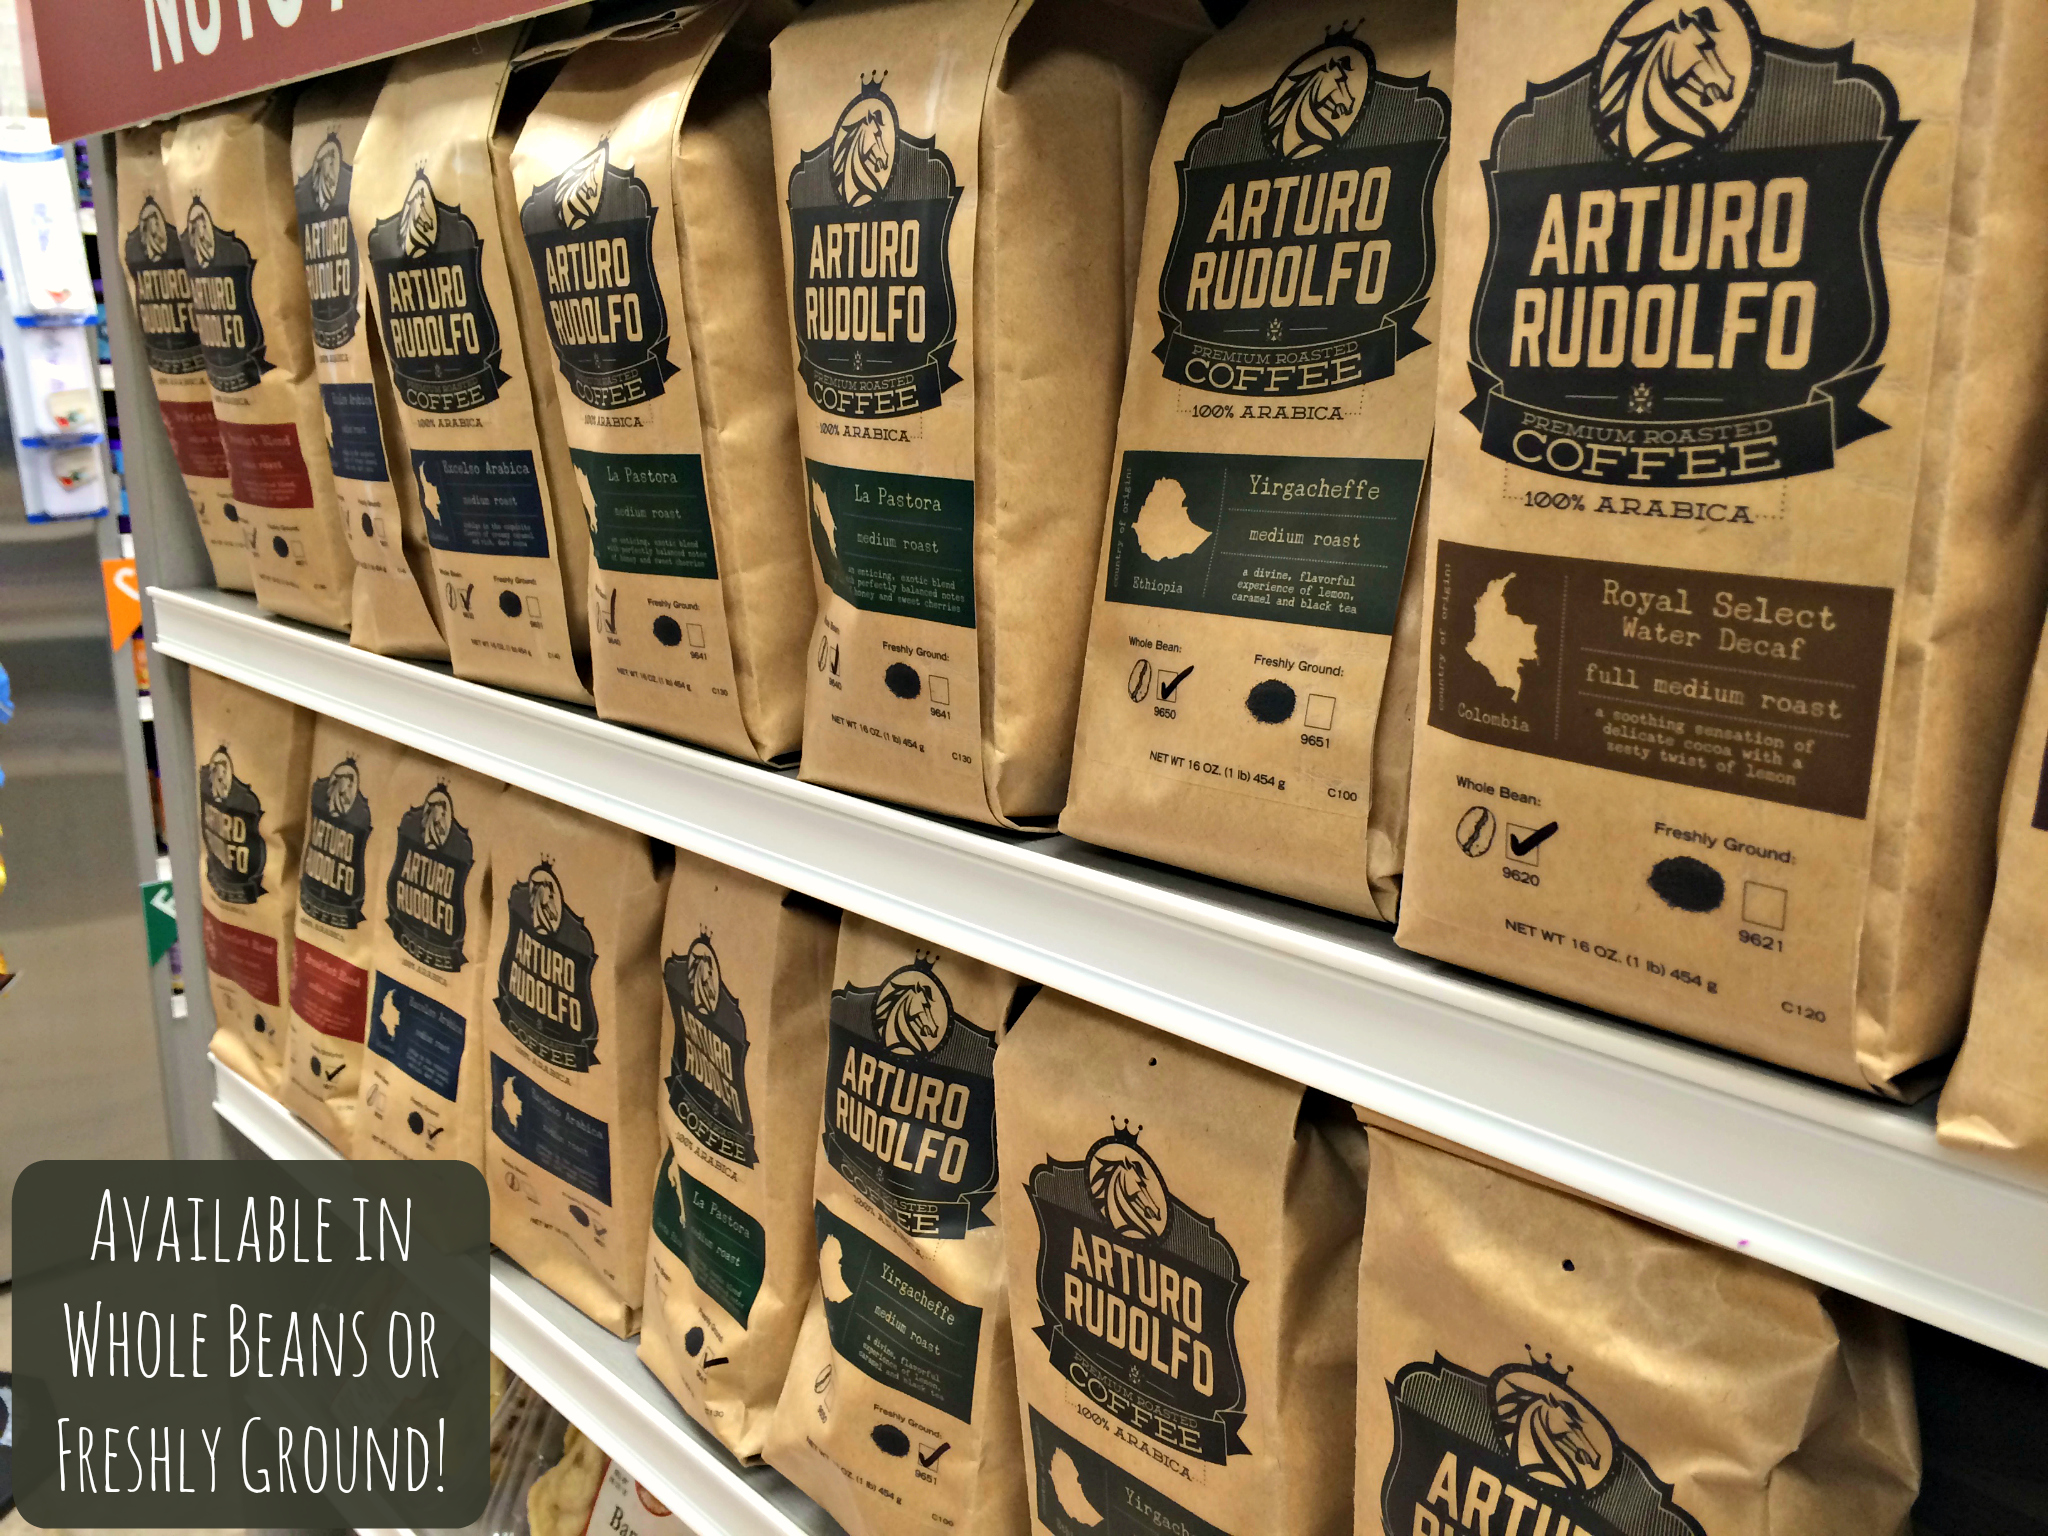 Piping Rock Arturo Rudolfo Coffee Collection - Decaf or Non, Ground or Whole Beans